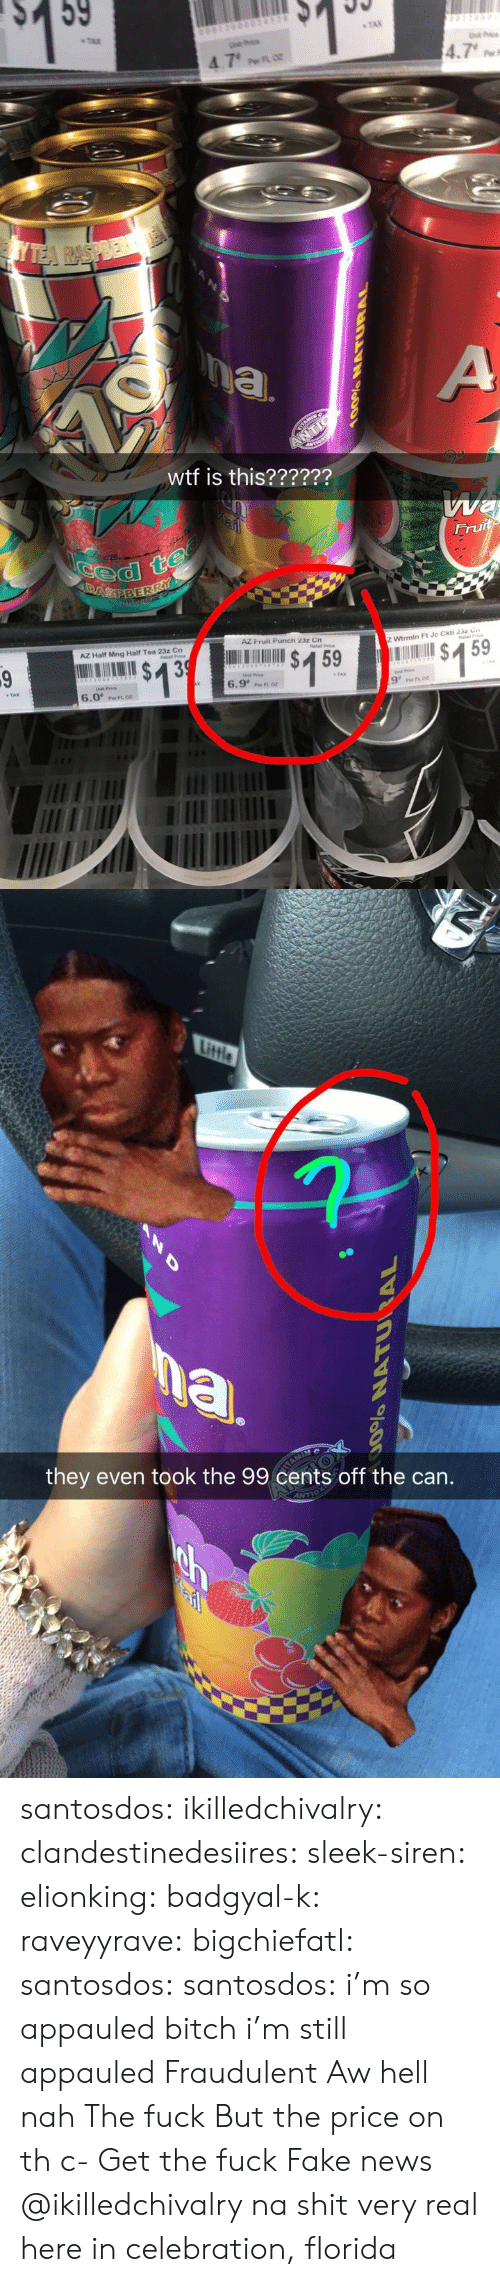 Naing: $ 59  TAN  4.7  wtf is this??????  dl  AZ Fruit Punch 23z Cn  AZ Half Mng Half Tea 23z Cn  tai Price  2 Wtrmin Ft Je Ckti 23 C  $159  6.9'n  9' FtOr  6.0'Pero   they even took the 99 cents off the can. santosdos: ikilledchivalry:   clandestinedesiires:   sleek-siren:   elionking:   badgyal-k:   raveyyrave:   bigchiefatl:   santosdos:  santosdos:  i'm so appauled  bitch i'm still appauled   Fraudulent   Aw hell nah   The fuck   But the price on th c-   Get the fuck     Fake news   @ikilledchivalry na shit very real here in celebration, florida